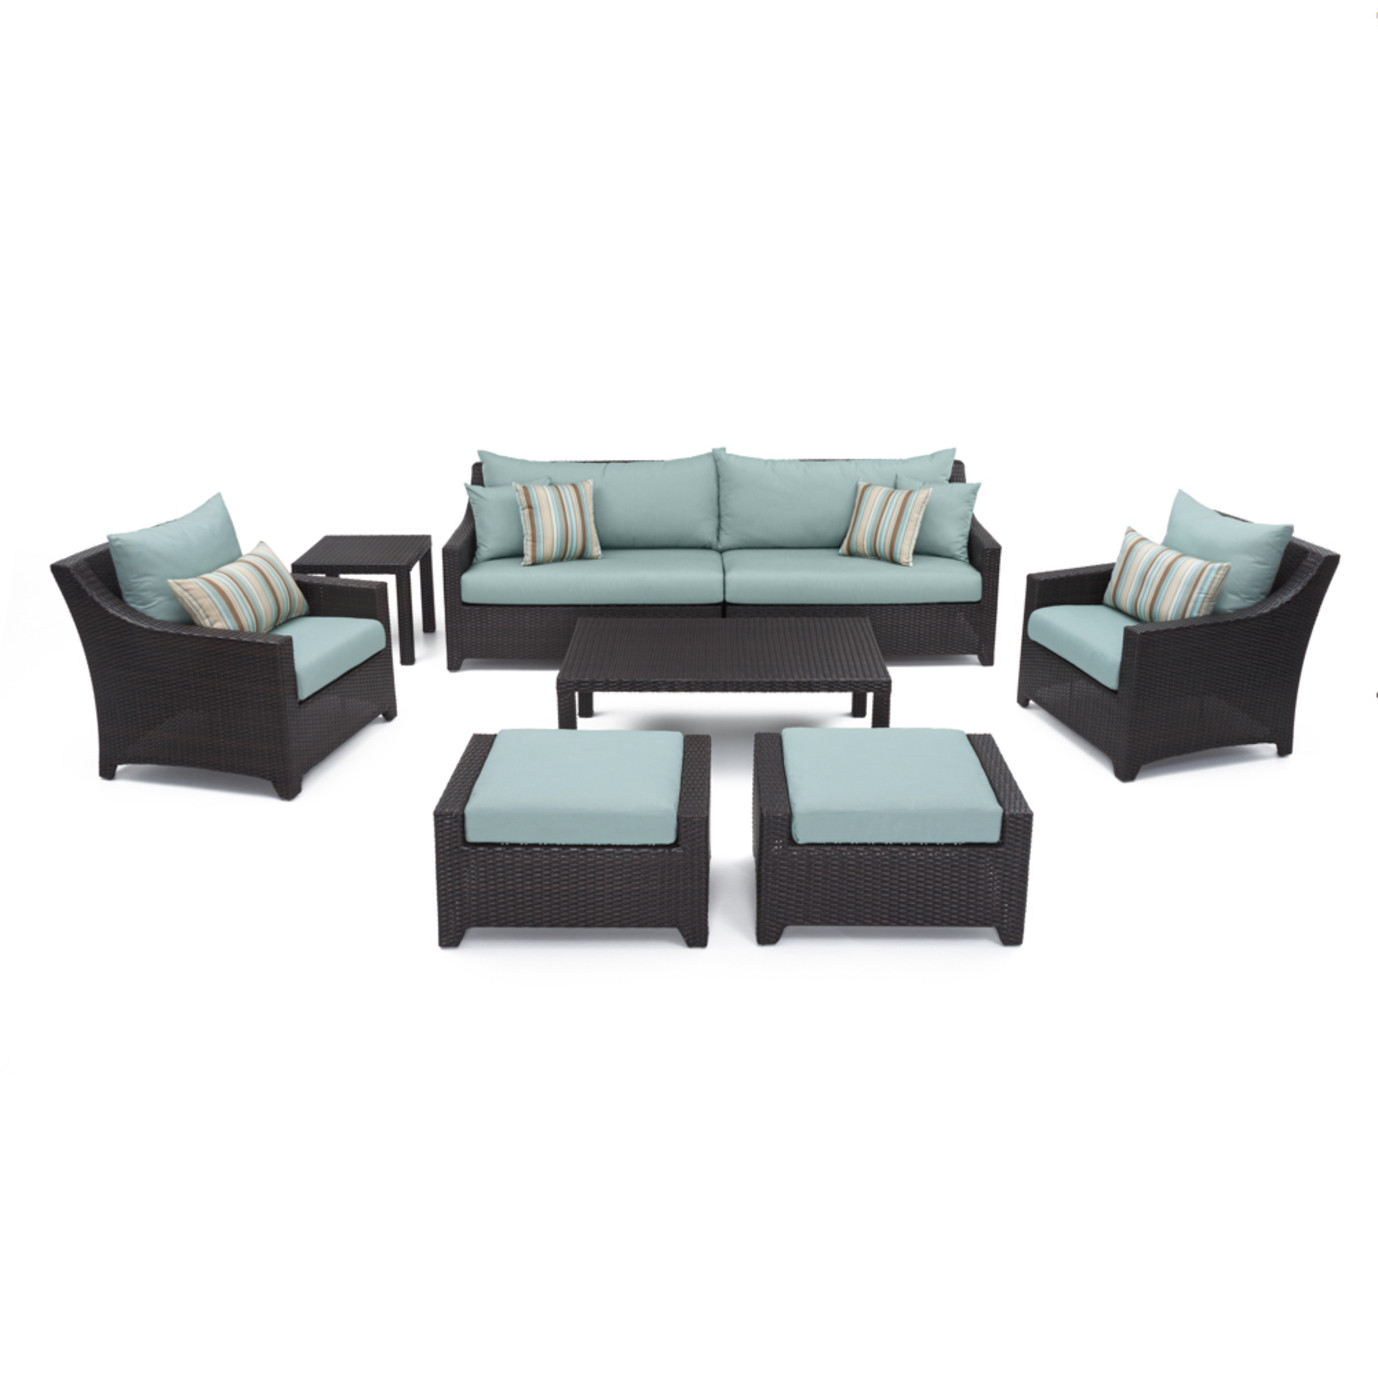 Deco™ 8pc Sofa Set with Furniture Covers - Bliss Blue